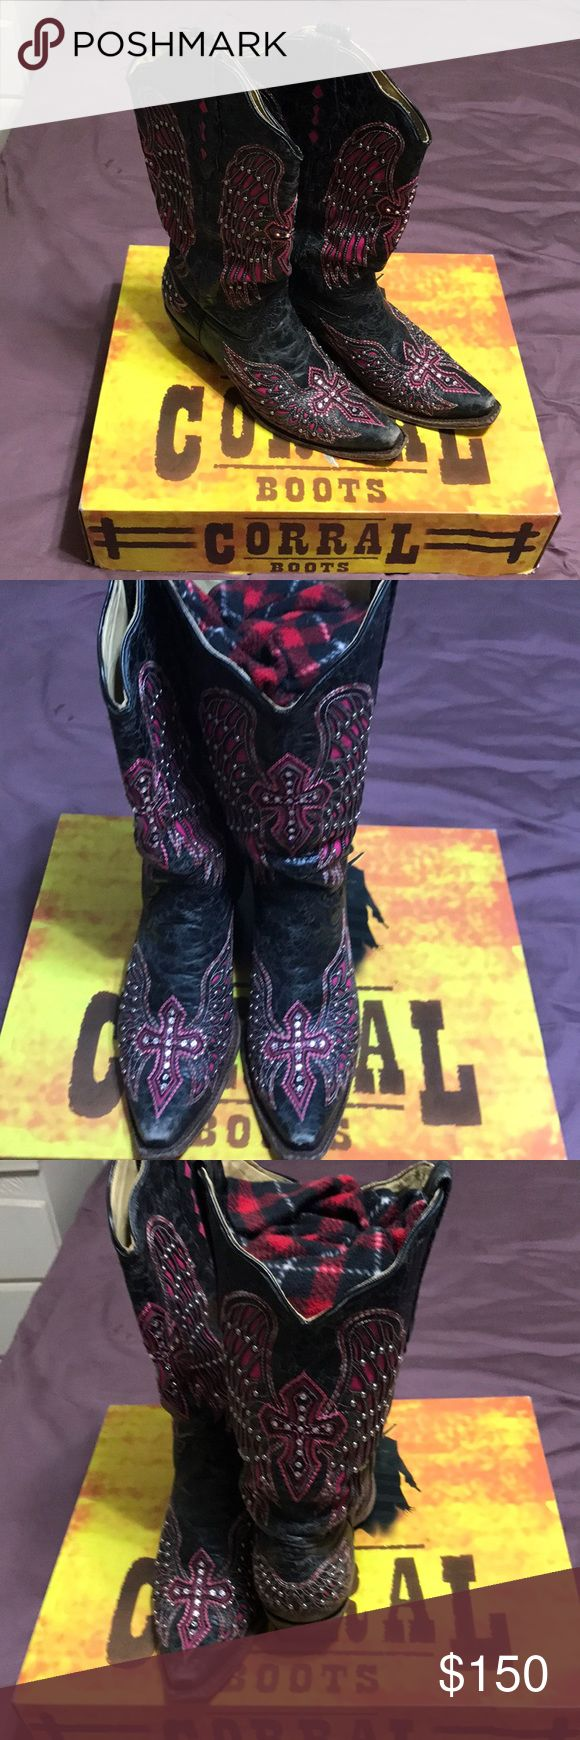 Corral Rhinestone Cowboy boots Excellent condition. These were purchased on my trip to Dallas but after breaking my ankle I just can't get them on. They are a 10.5 but will fit an 11 due to the shape of the toe. Got many compliments on them the few times they were worn. Will come in the original individual plastic bags, but with the box will be over 5lbs shipped weight if you want that included in the sale. Corral Shoes Heeled Boots